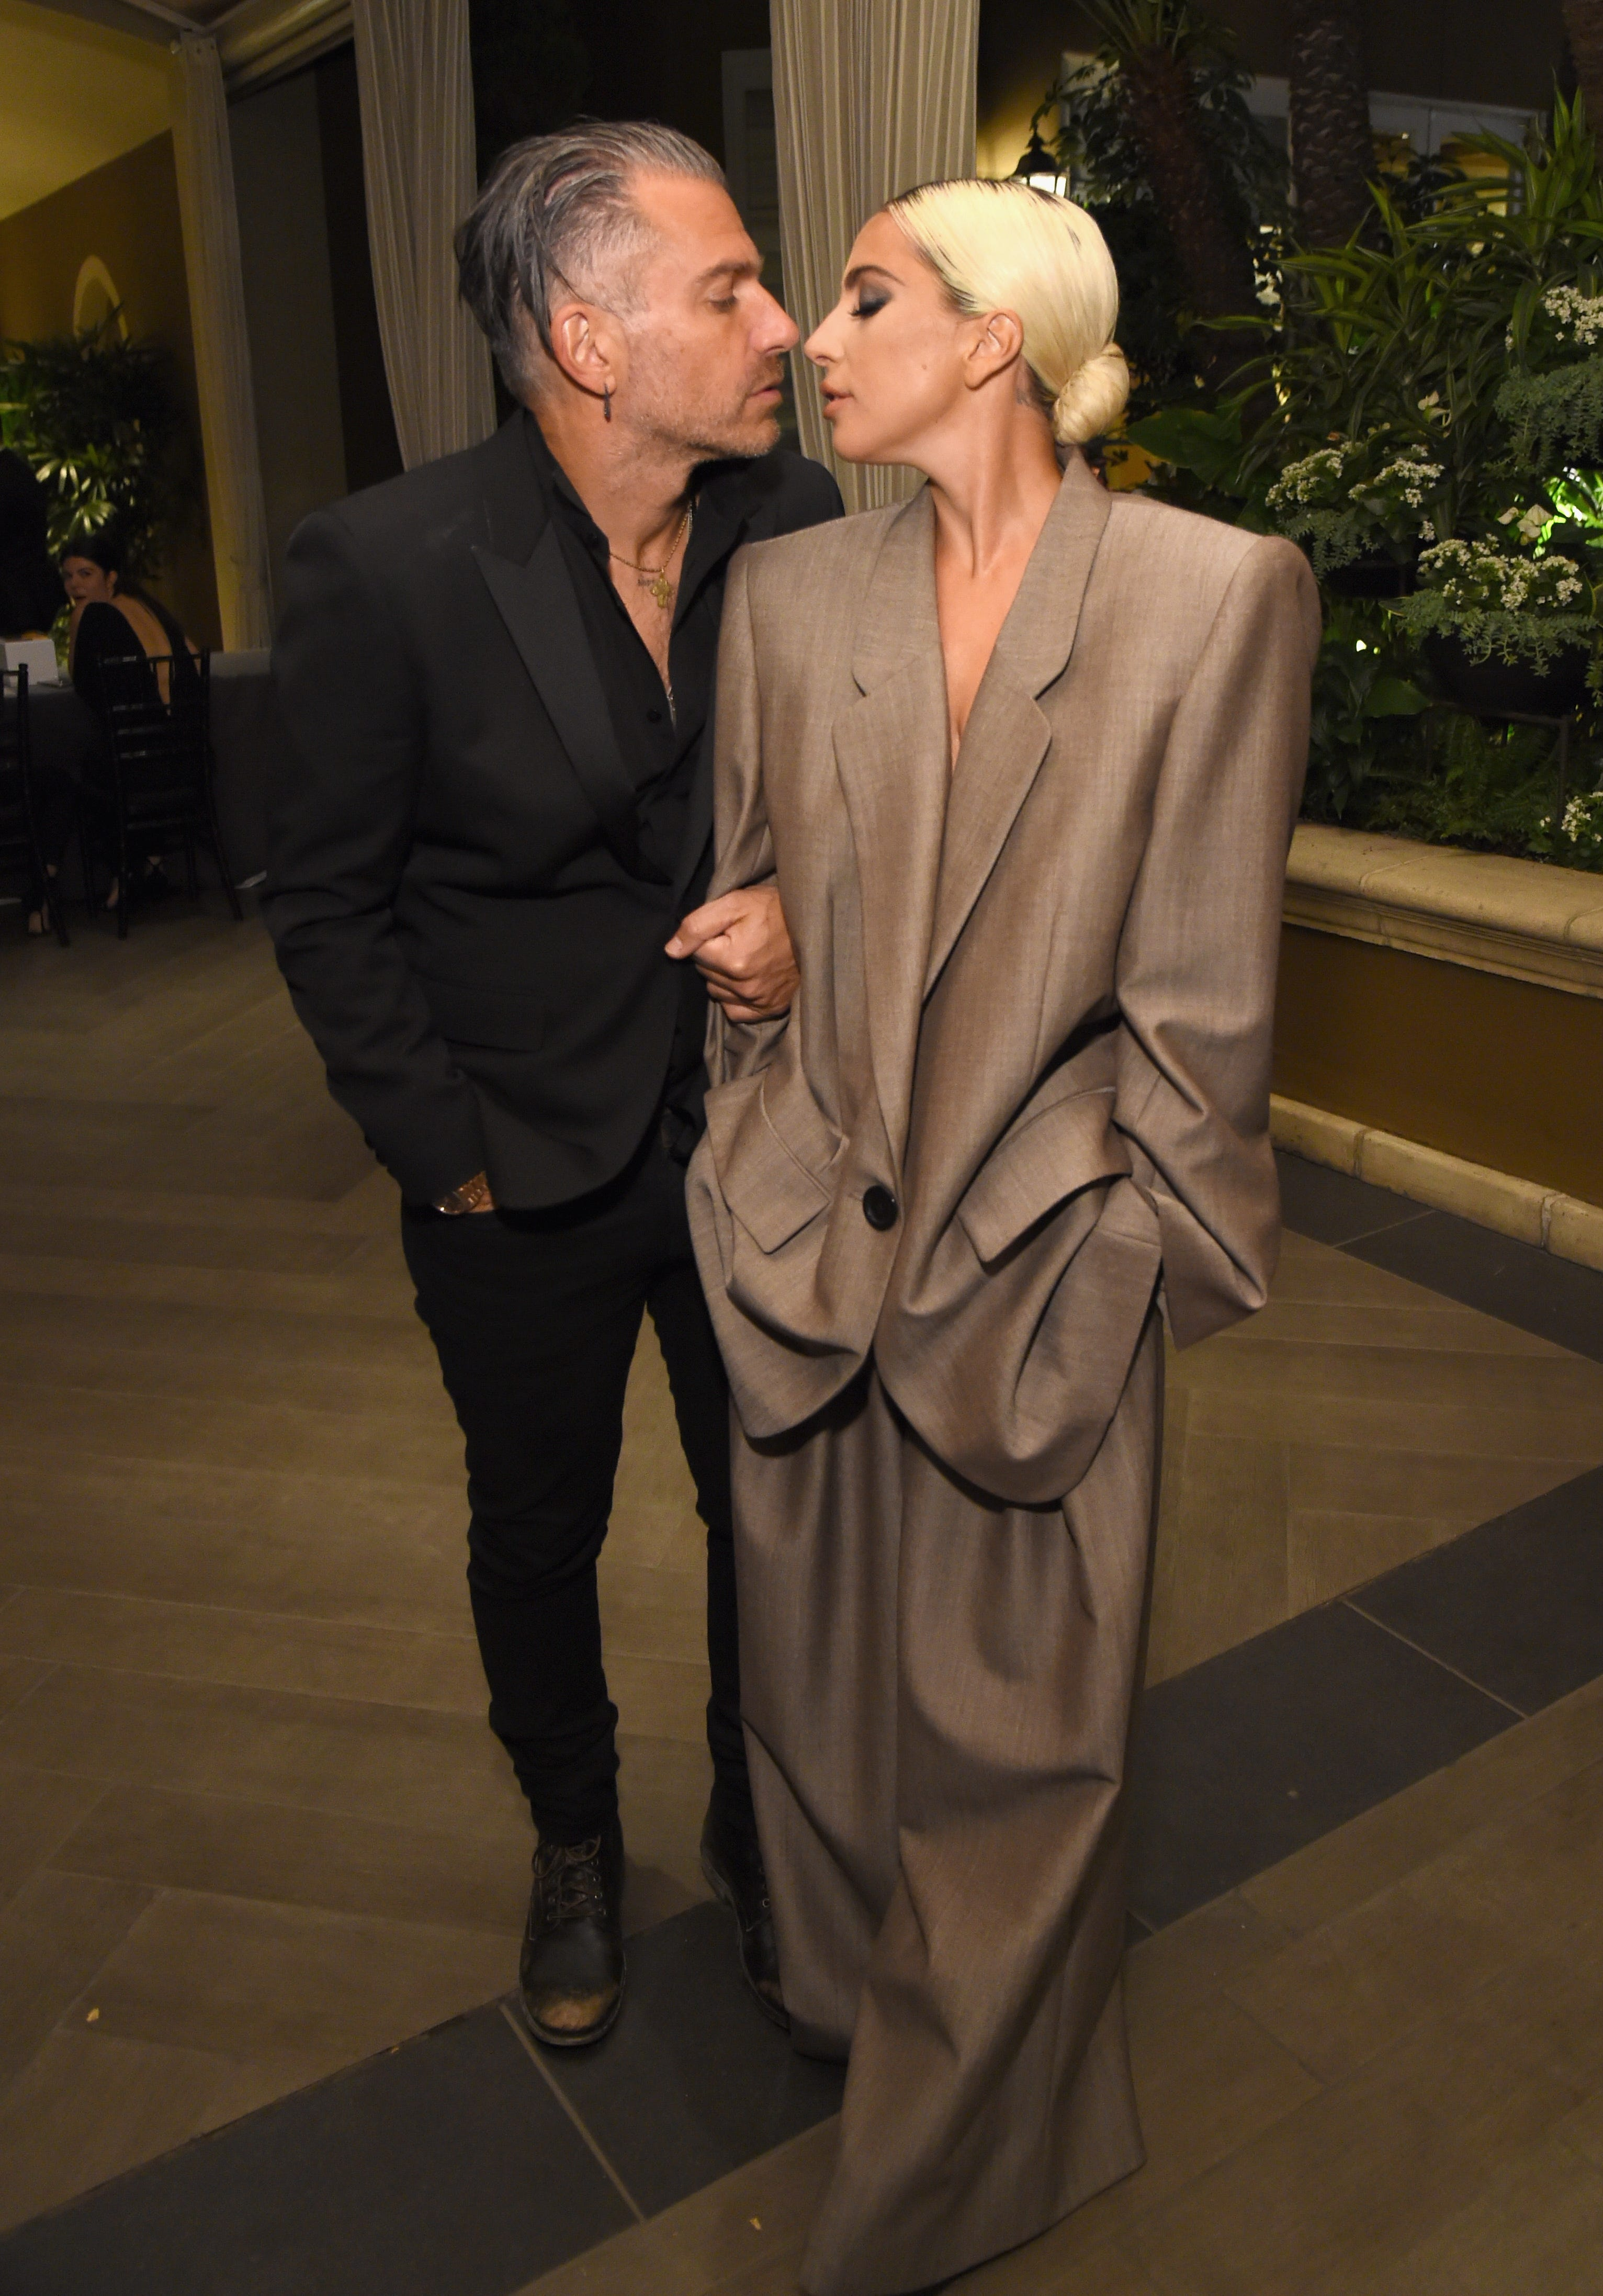 Lady Gaga Confirms Engagement To Christian Carino During Speech